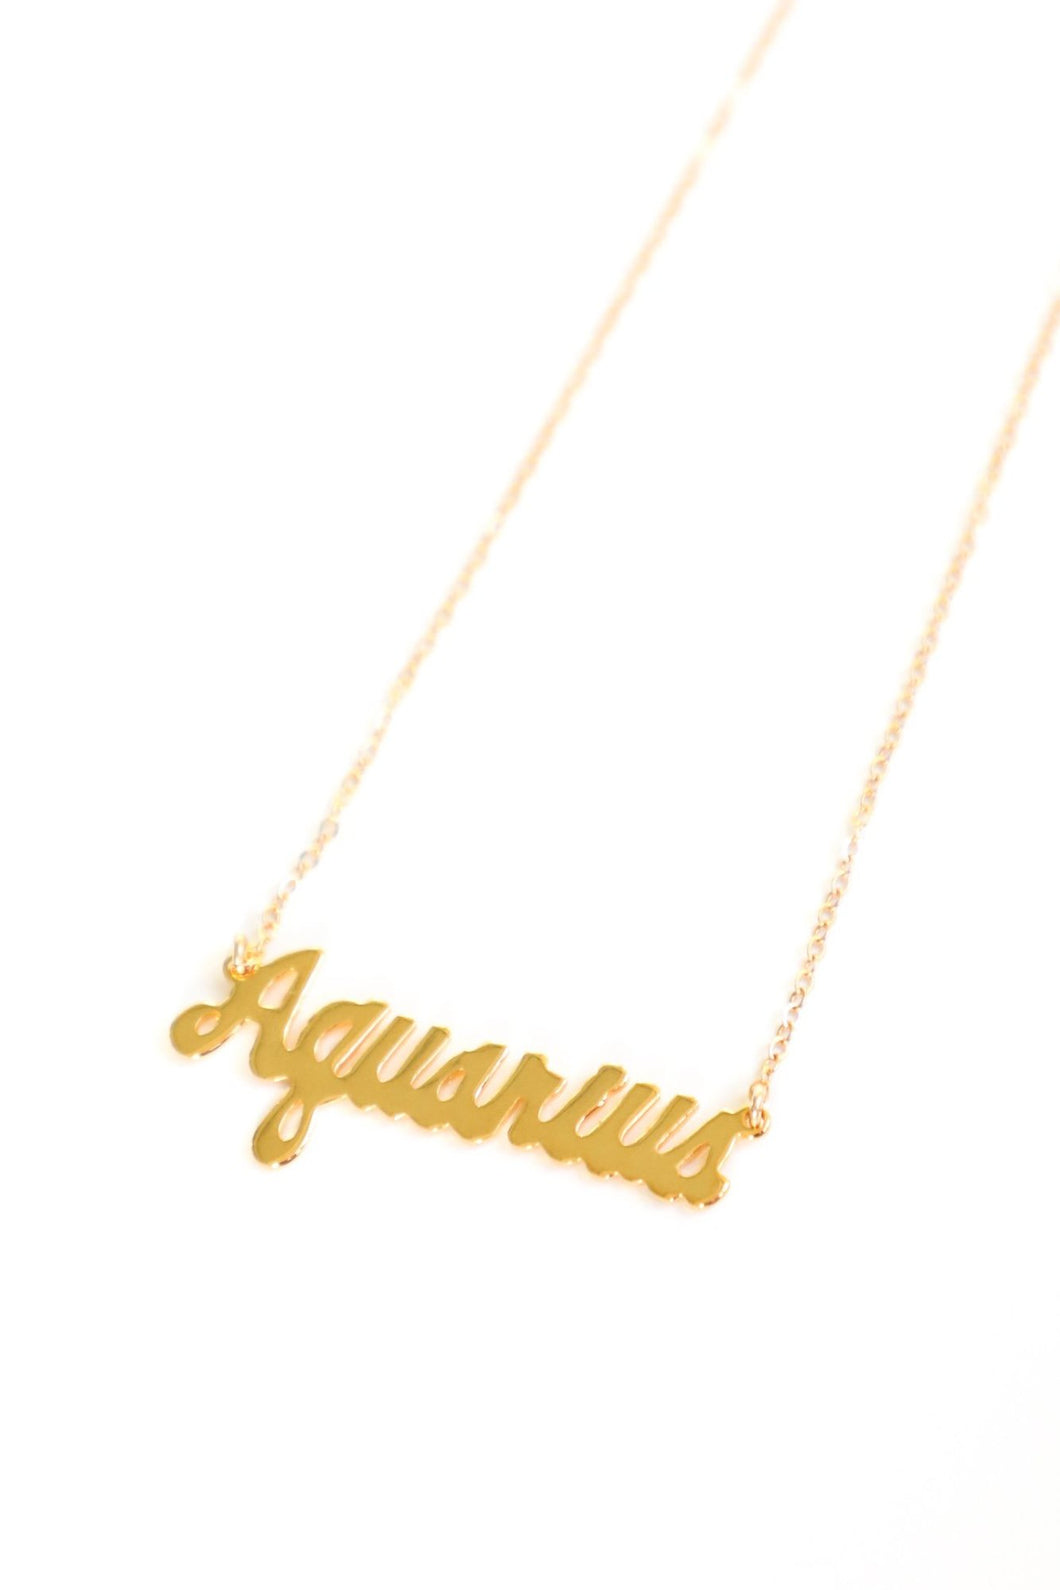 AQUARIUS NECKLACE